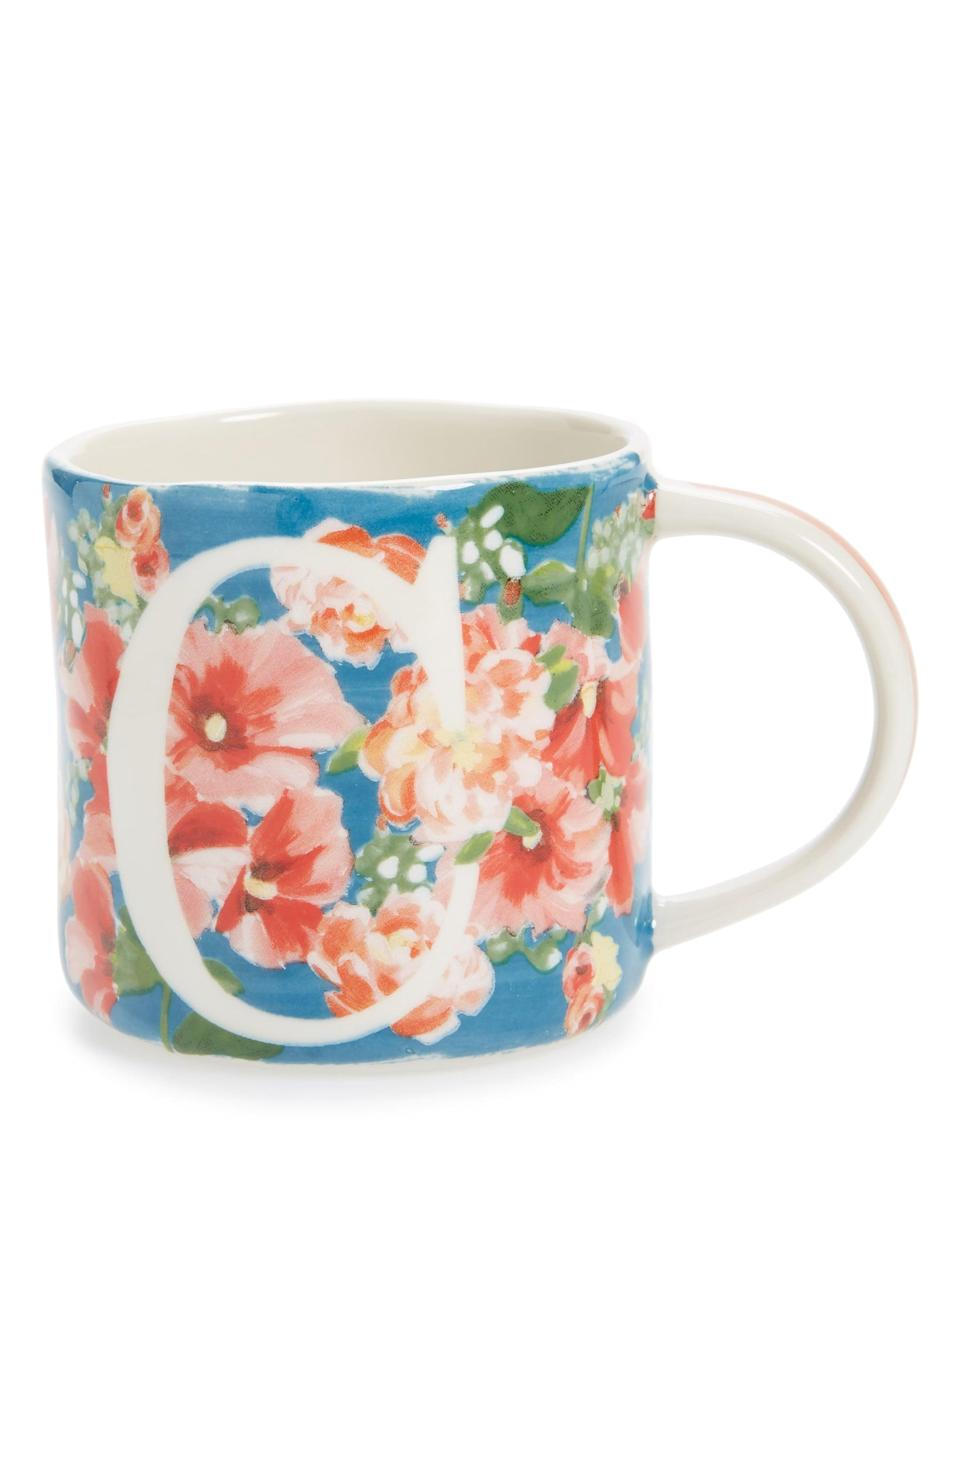 "<p>This <a href=""https://www.popsugar.com/buy/Anthropologie-Dawn-Monogram-Mug-533181?p_name=Anthropologie%20Dawn%20Monogram%20Mug&retailer=shop.nordstrom.com&pid=533181&price=11&evar1=fab%3Aus&evar9=36291197&evar98=https%3A%2F%2Fwww.popsugar.com%2Ffashion%2Fphoto-gallery%2F36291197%2Fimage%2F46949051%2FAnthropologie-Dawn-Monogram-Mug&list1=shopping%2Choliday%2Cwinter%2Cgift%20guide%2Cwinter%20fashion%2Choliday%20fashion%2Cfashion%20gifts&prop13=api&pdata=1"" rel=""nofollow noopener"" class=""link rapid-noclick-resp"" target=""_blank"" data-ylk=""slk:Anthropologie Dawn Monogram Mug"">Anthropologie Dawn Monogram Mug</a> ($11, originally $14) is always a great gift.</p>"